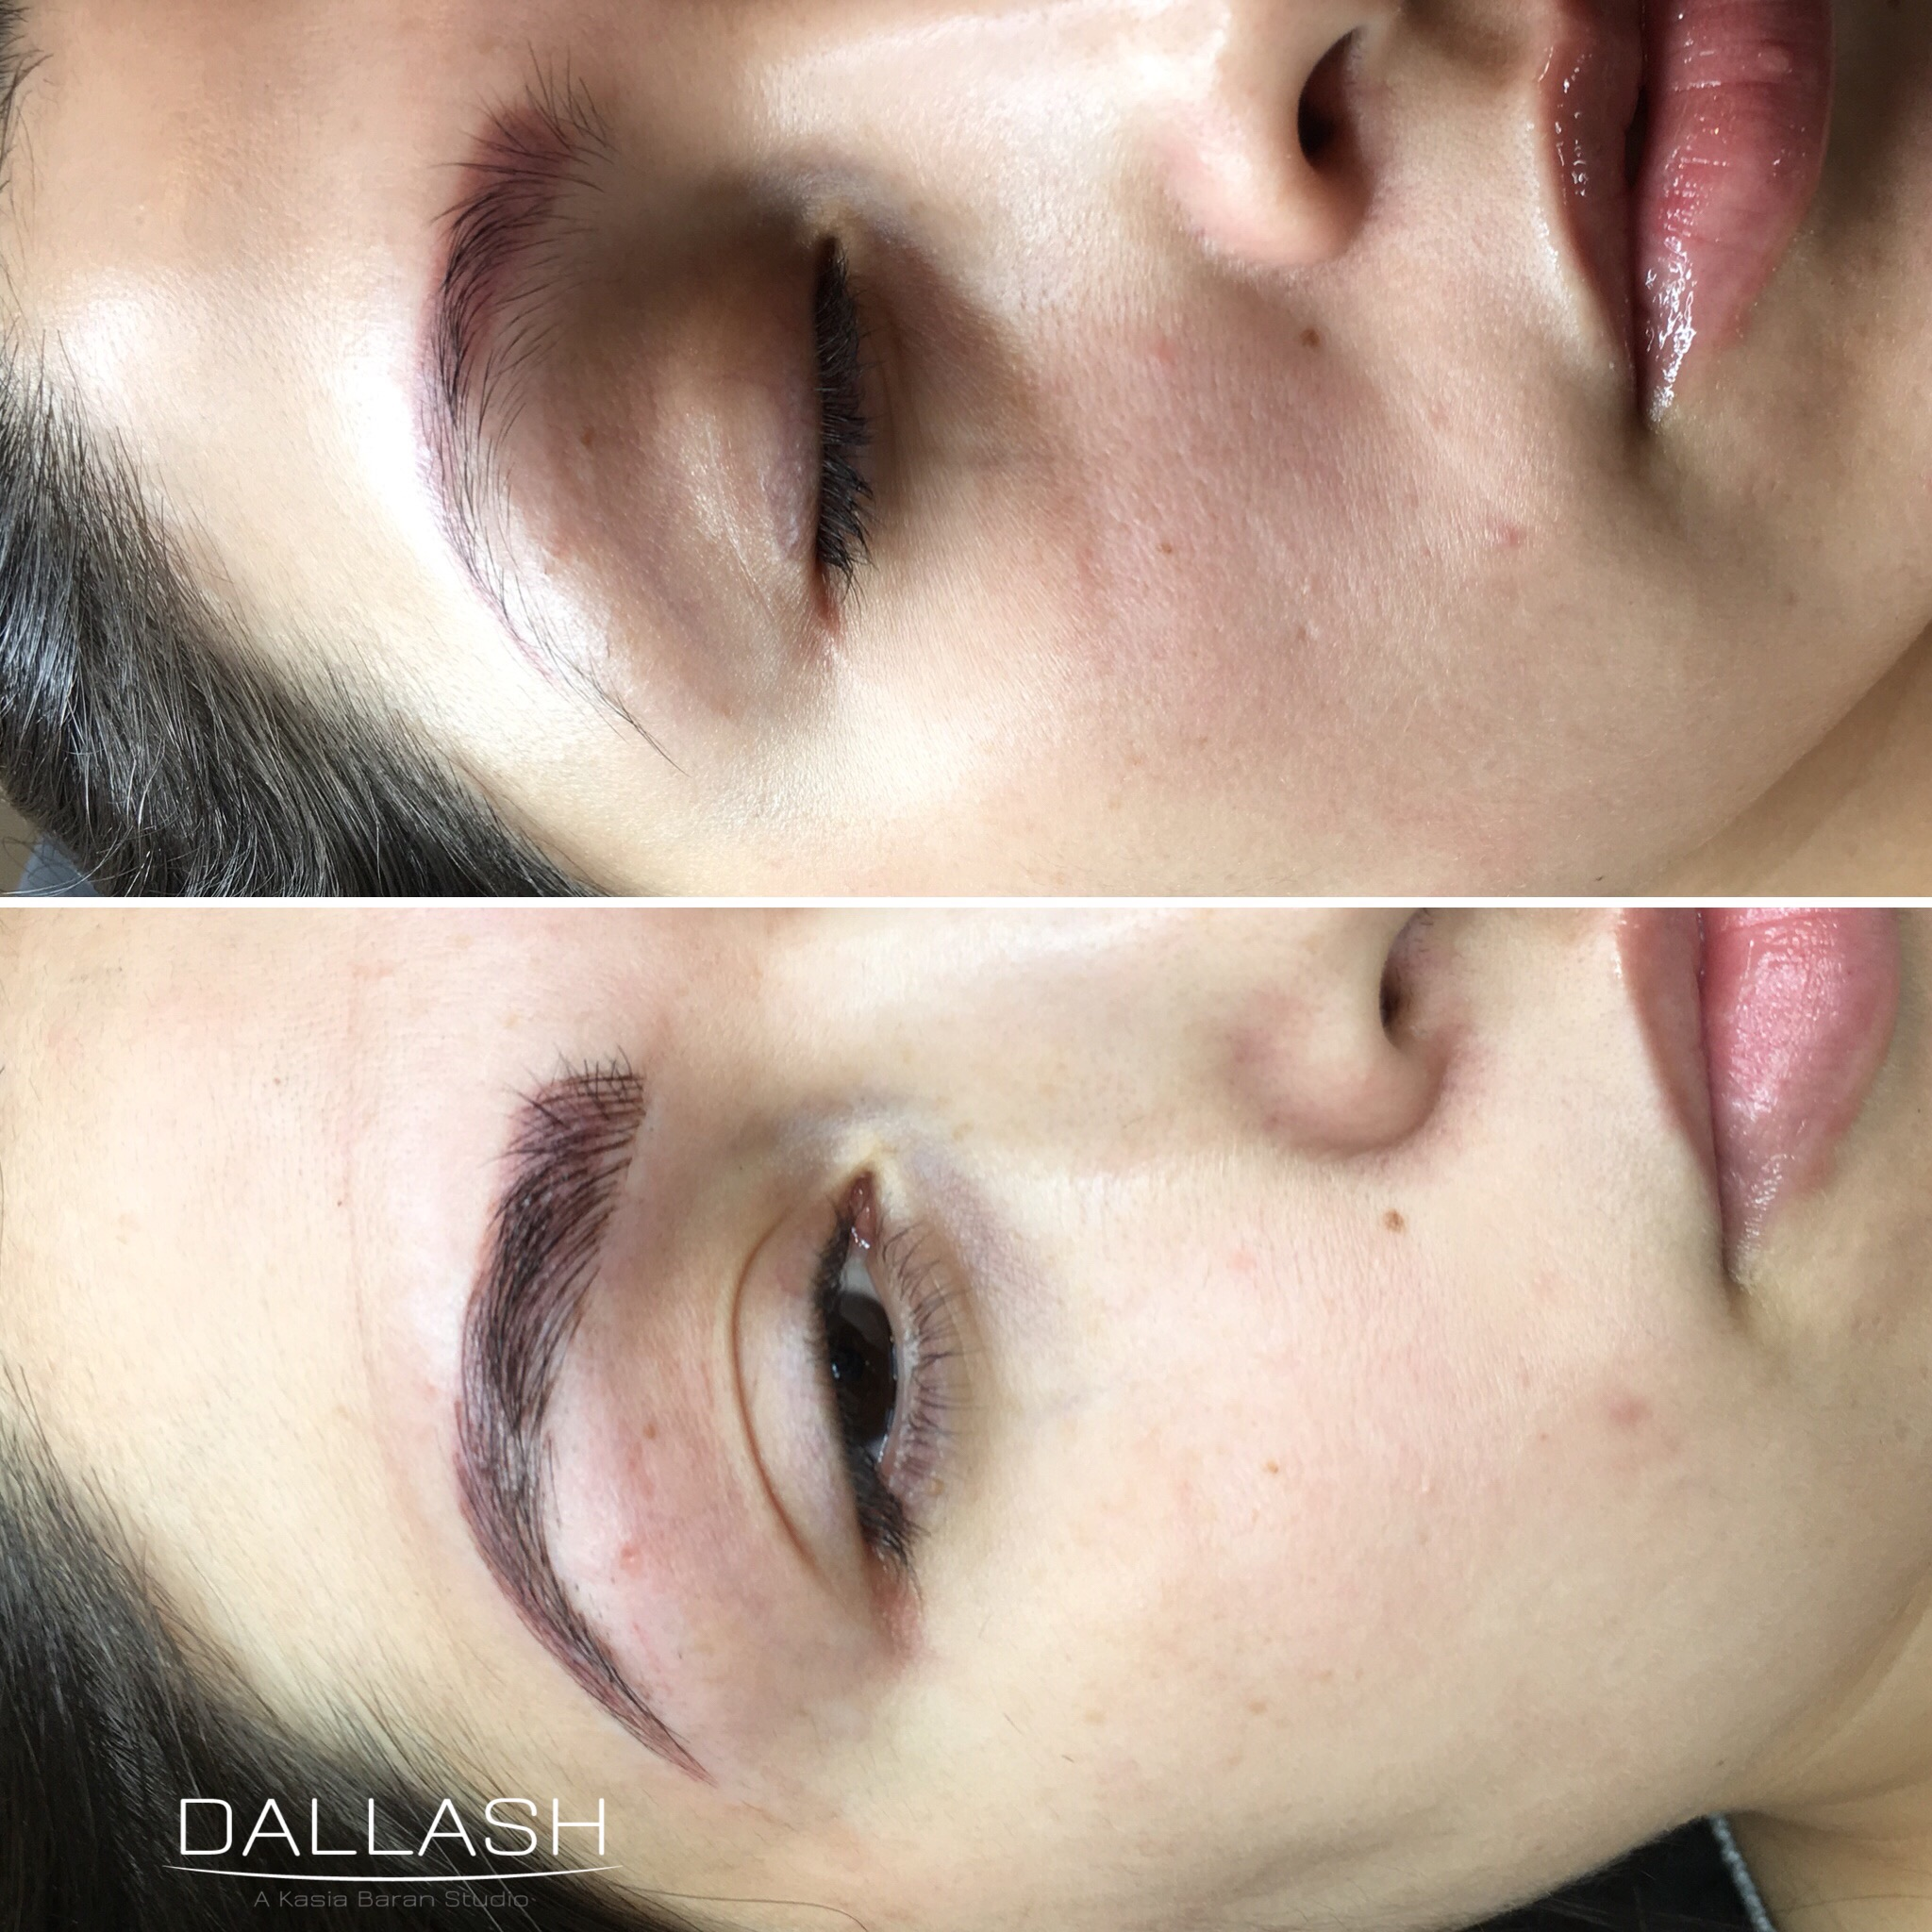 MICROBLADING-DALLAS-SEMIPERMANENET BROWS-EYEBROWS-3DBROWS-MICROBLADING-DALLAS-DALLASHSTUDI0.JPG-TATT